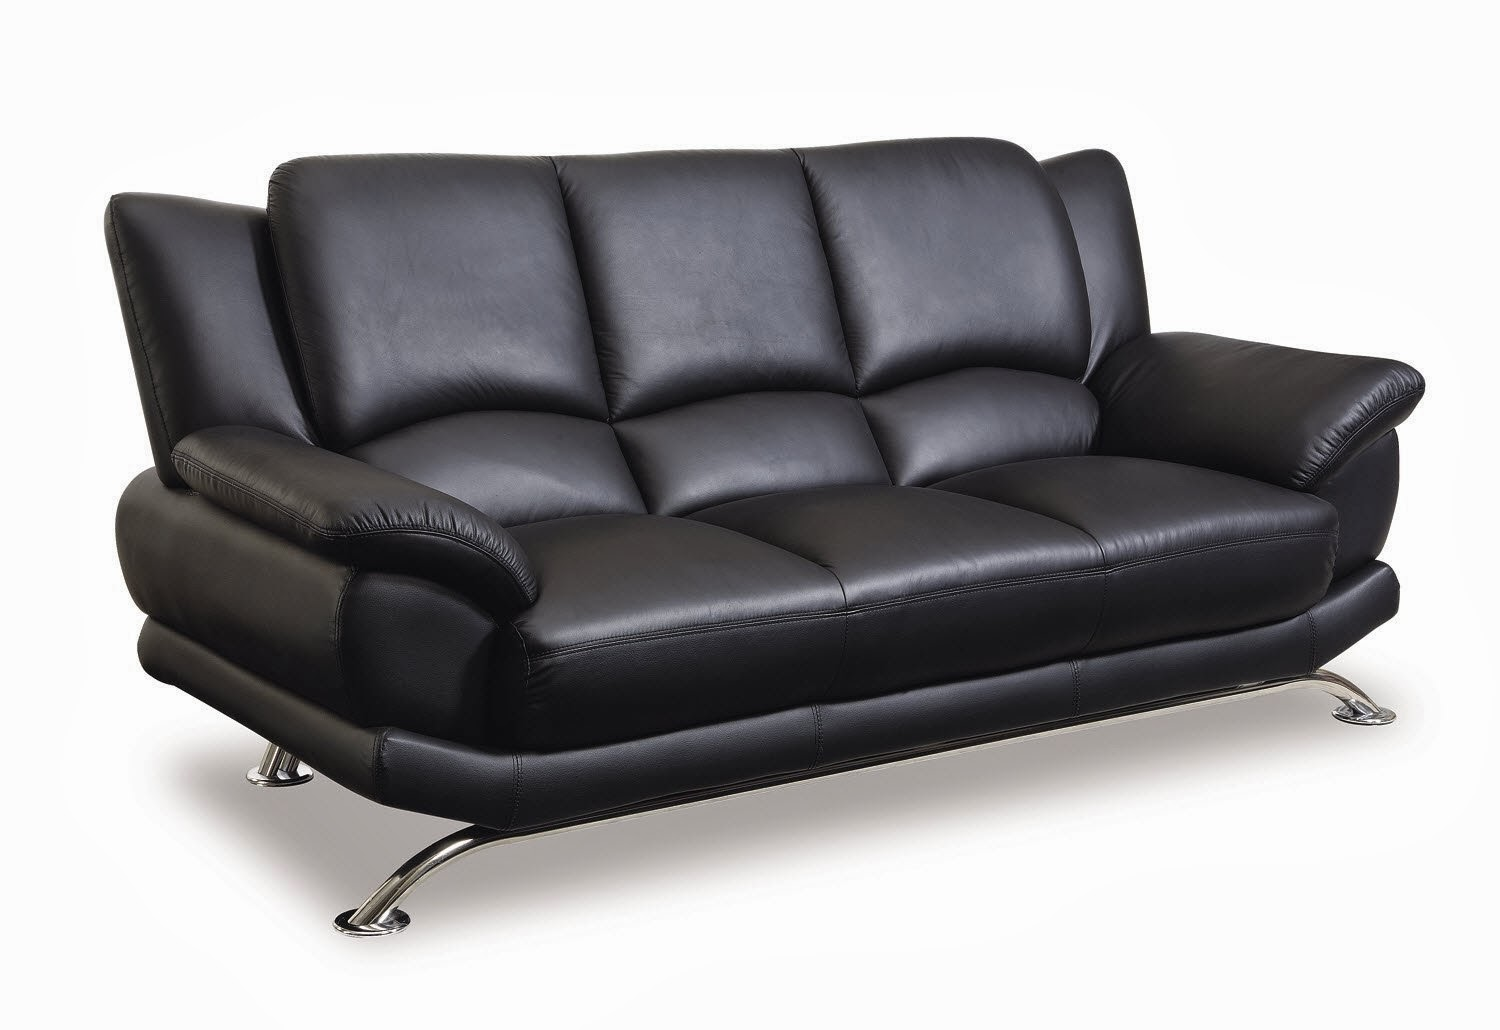 Bonded Leather Matching Sofa Black With Chrome Legs